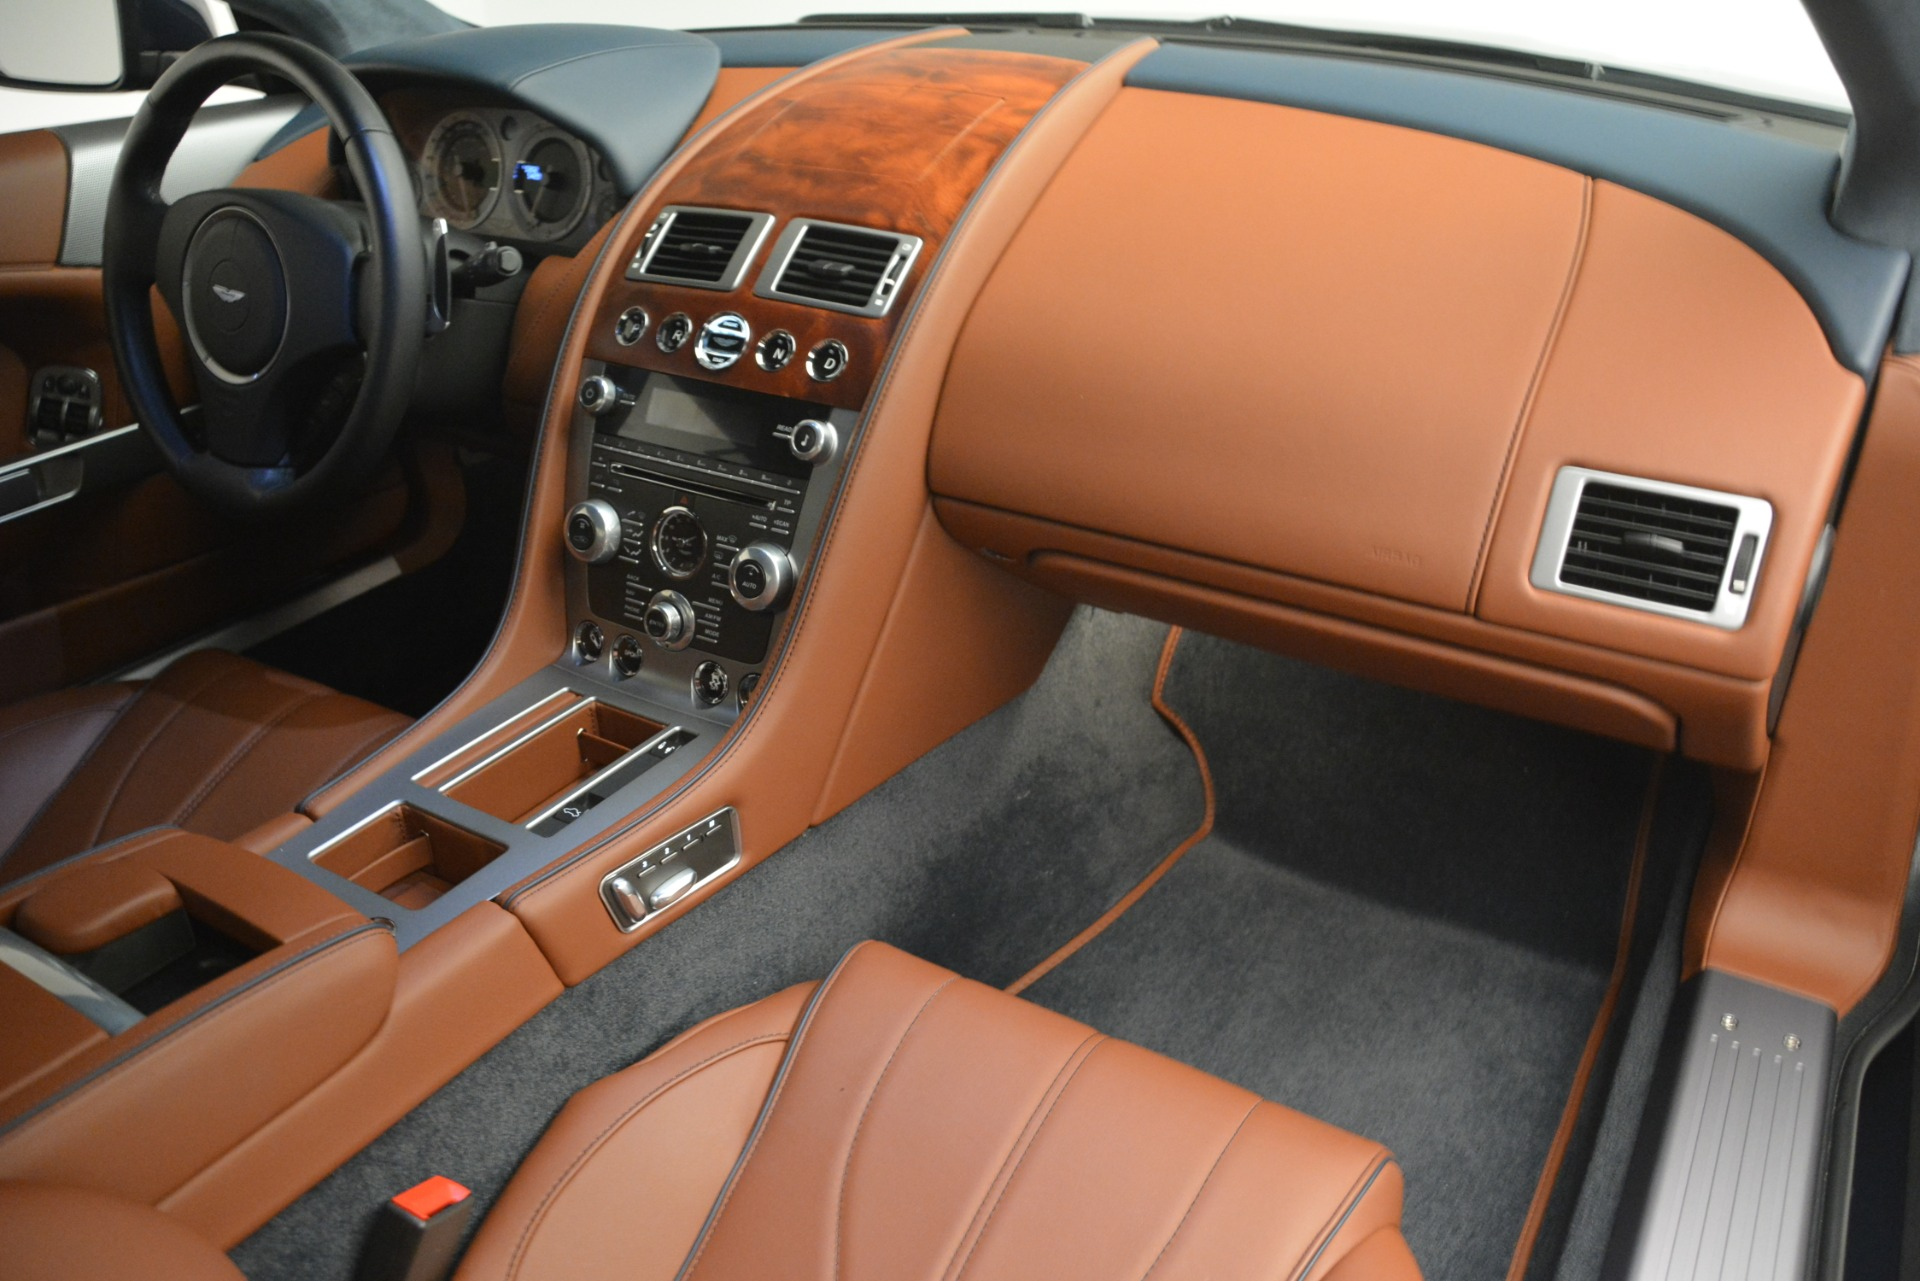 Used 2014 Aston Martin DB9 Coupe For Sale In Westport, CT 3010_p20